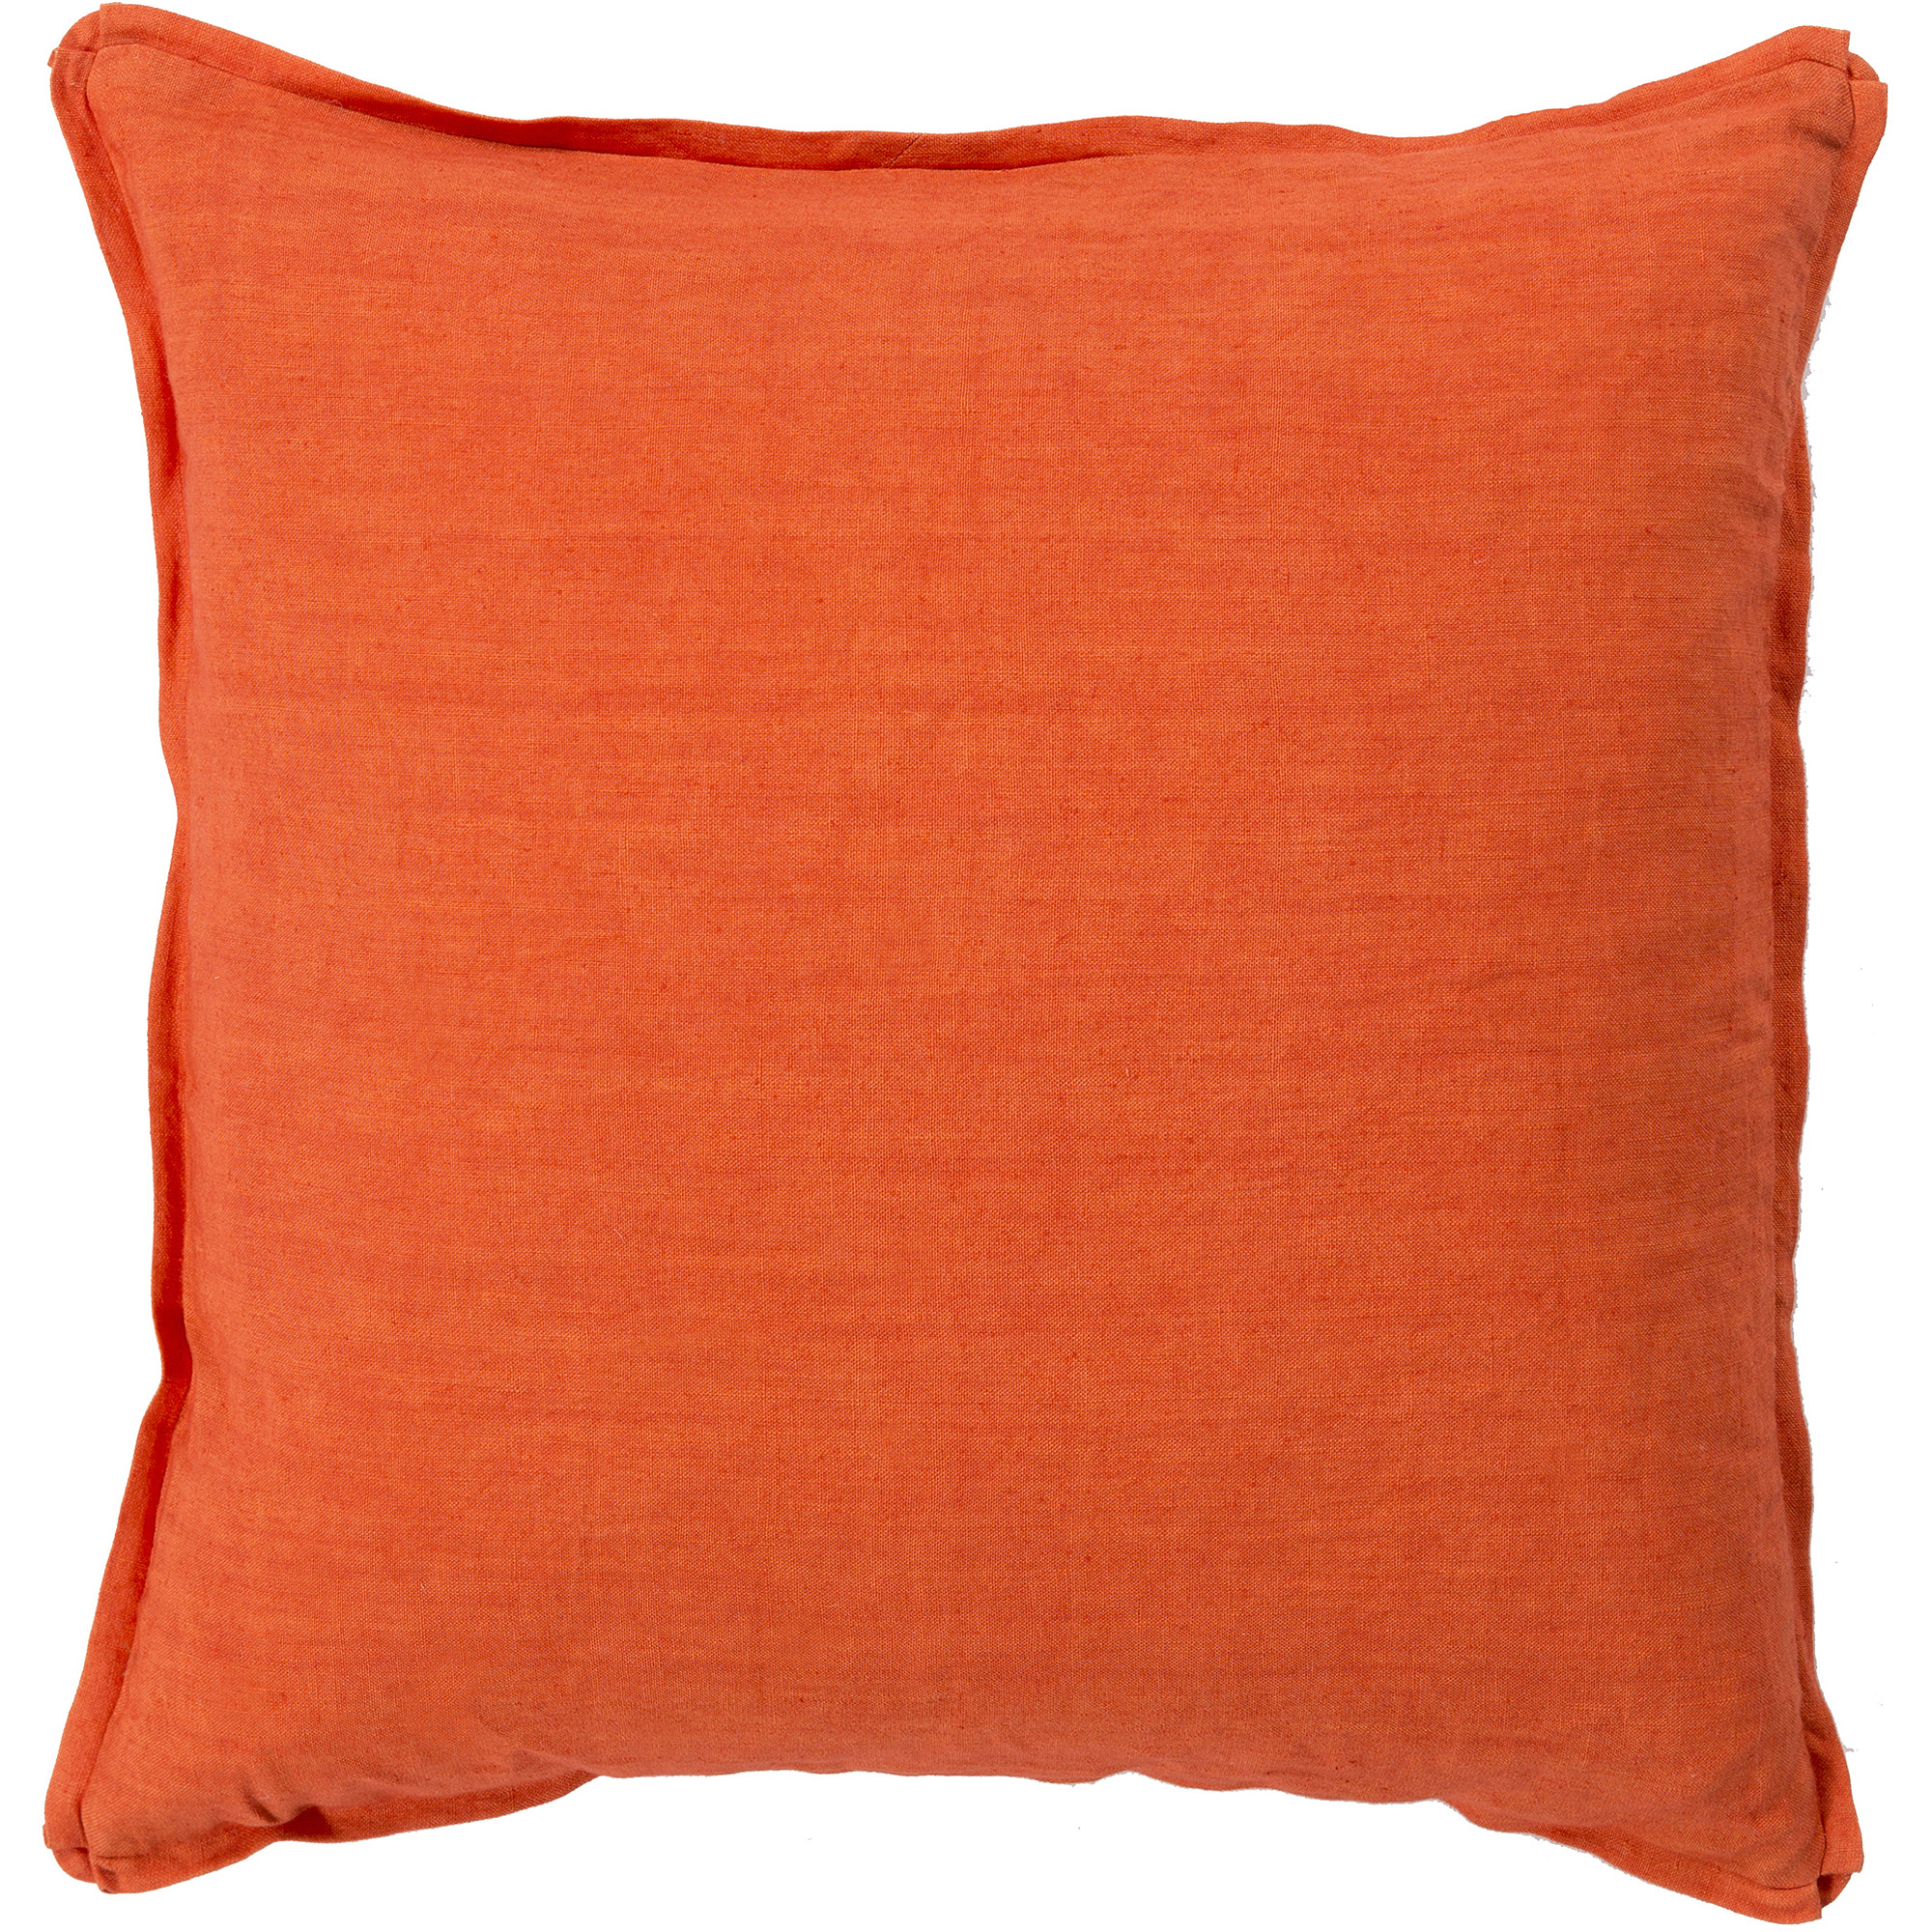 Libby Langdon Luxe Hand Crafted Linen Fancy Flange Decorative Pillow with Poly Filler, Poppy